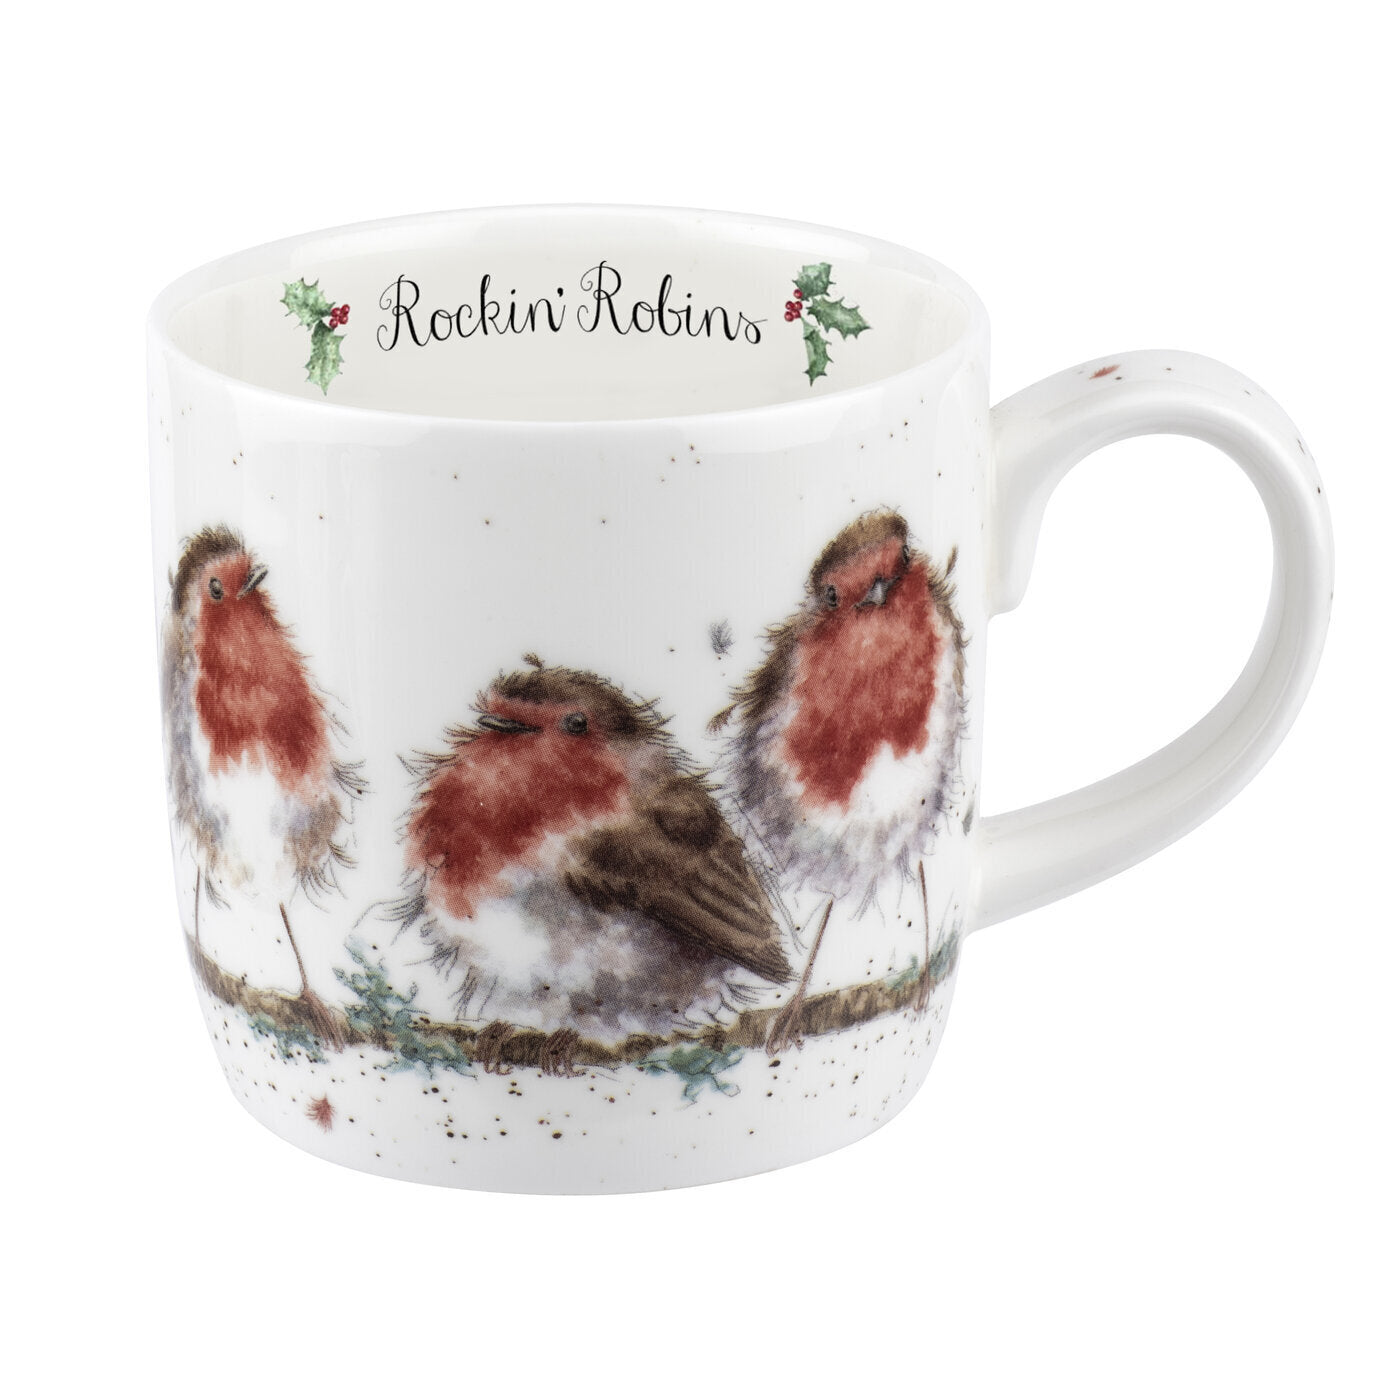 Royal Worcester Wrendale Designs - Robins Mug Rockin' Robins